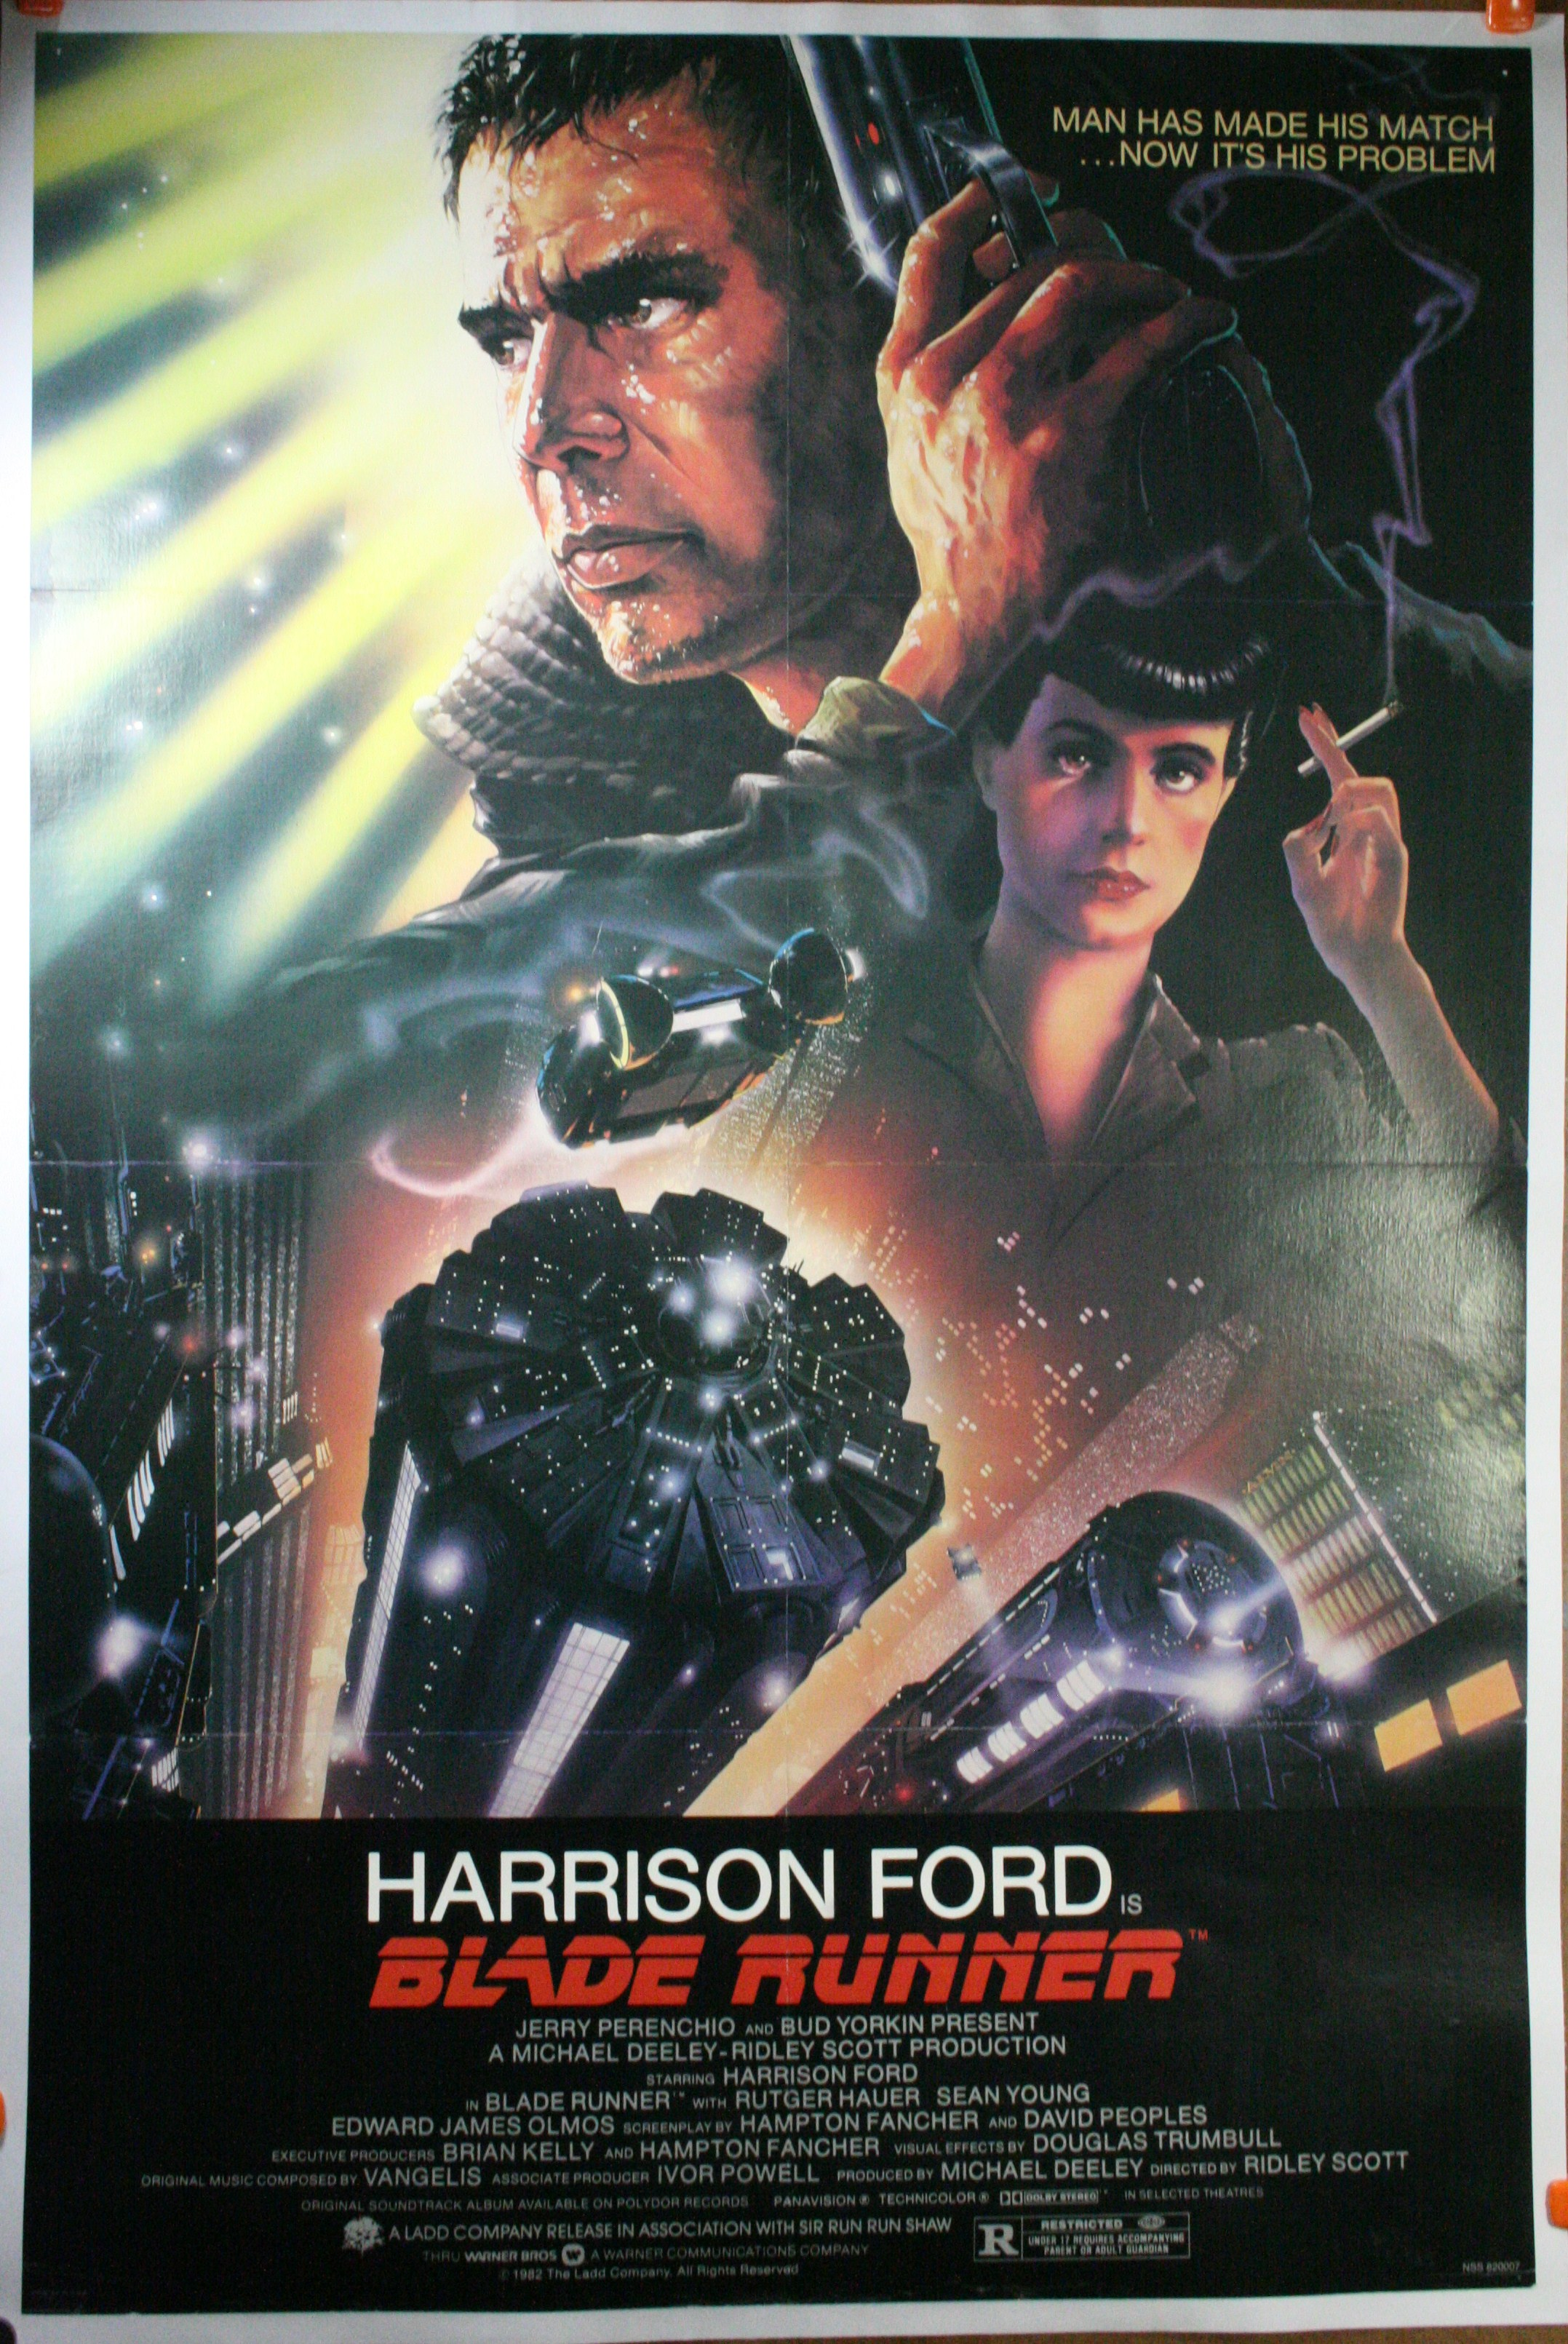 BLADE RUNNER, Original Vintage Film Poster - photo#4